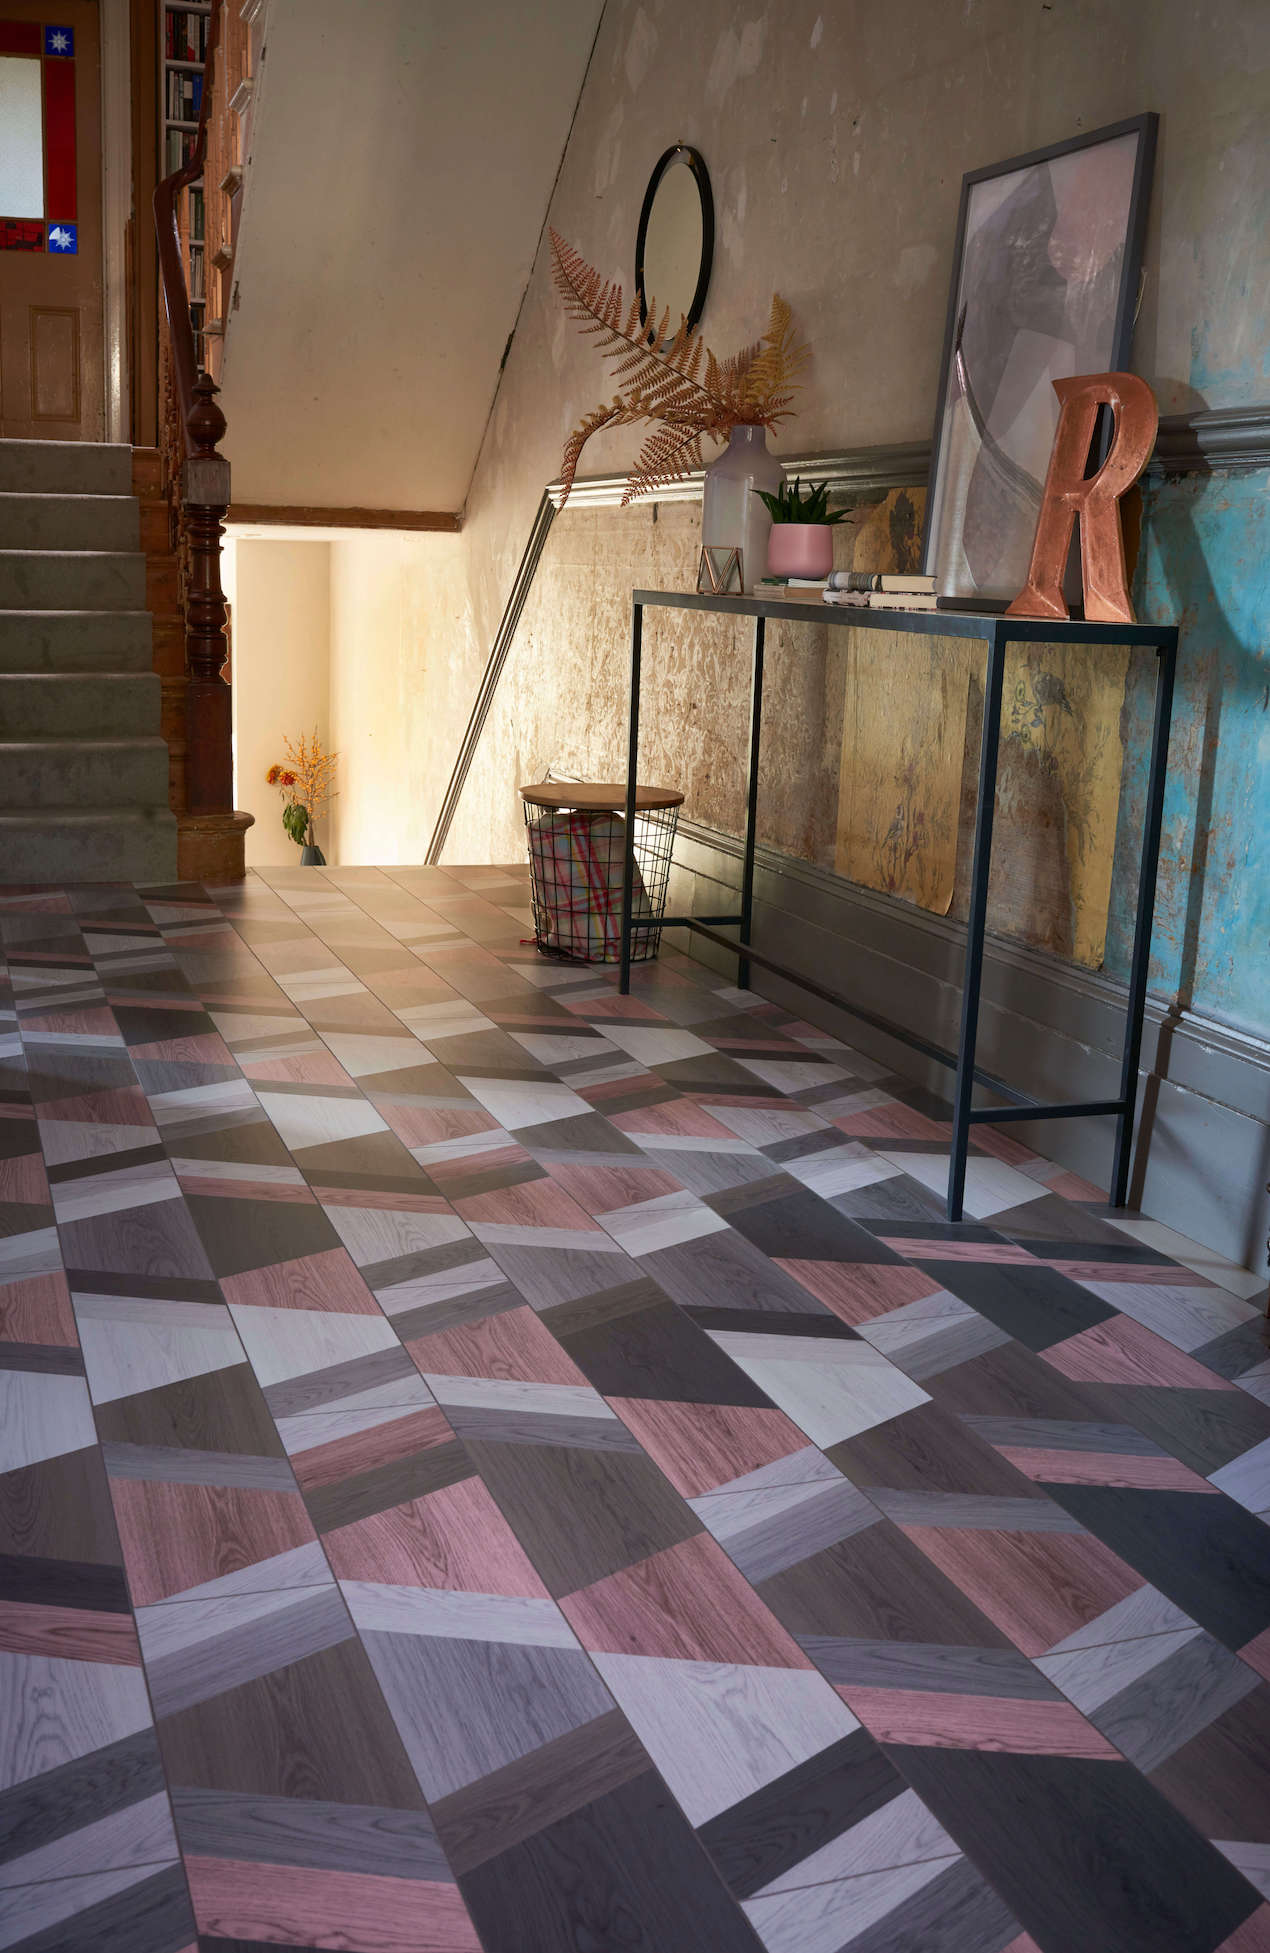 Hottest flooring trend this Spring is to take classic patterns and updated them with modern styling says Interior Stylist Maxine Brady at welovehomeblog.com